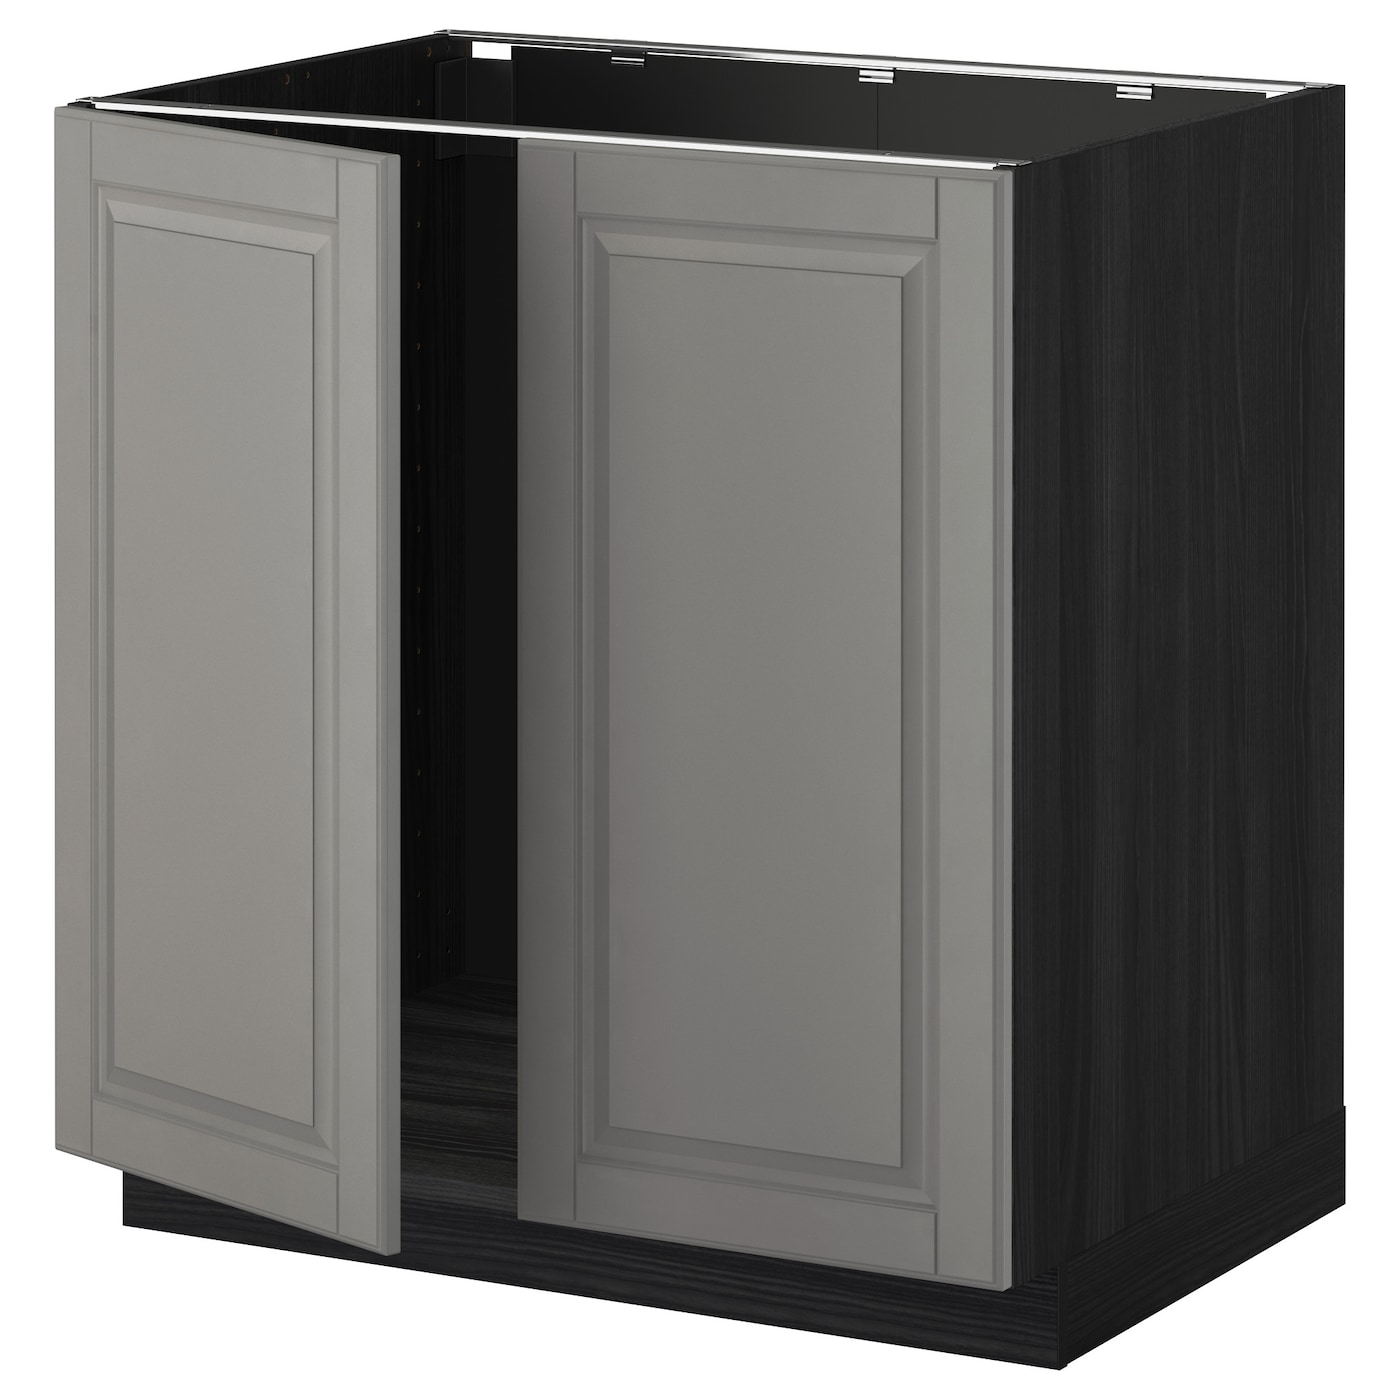 Metod base cabinet for sink 2 doors black bodbyn grey 80 for Ikea kuche metod